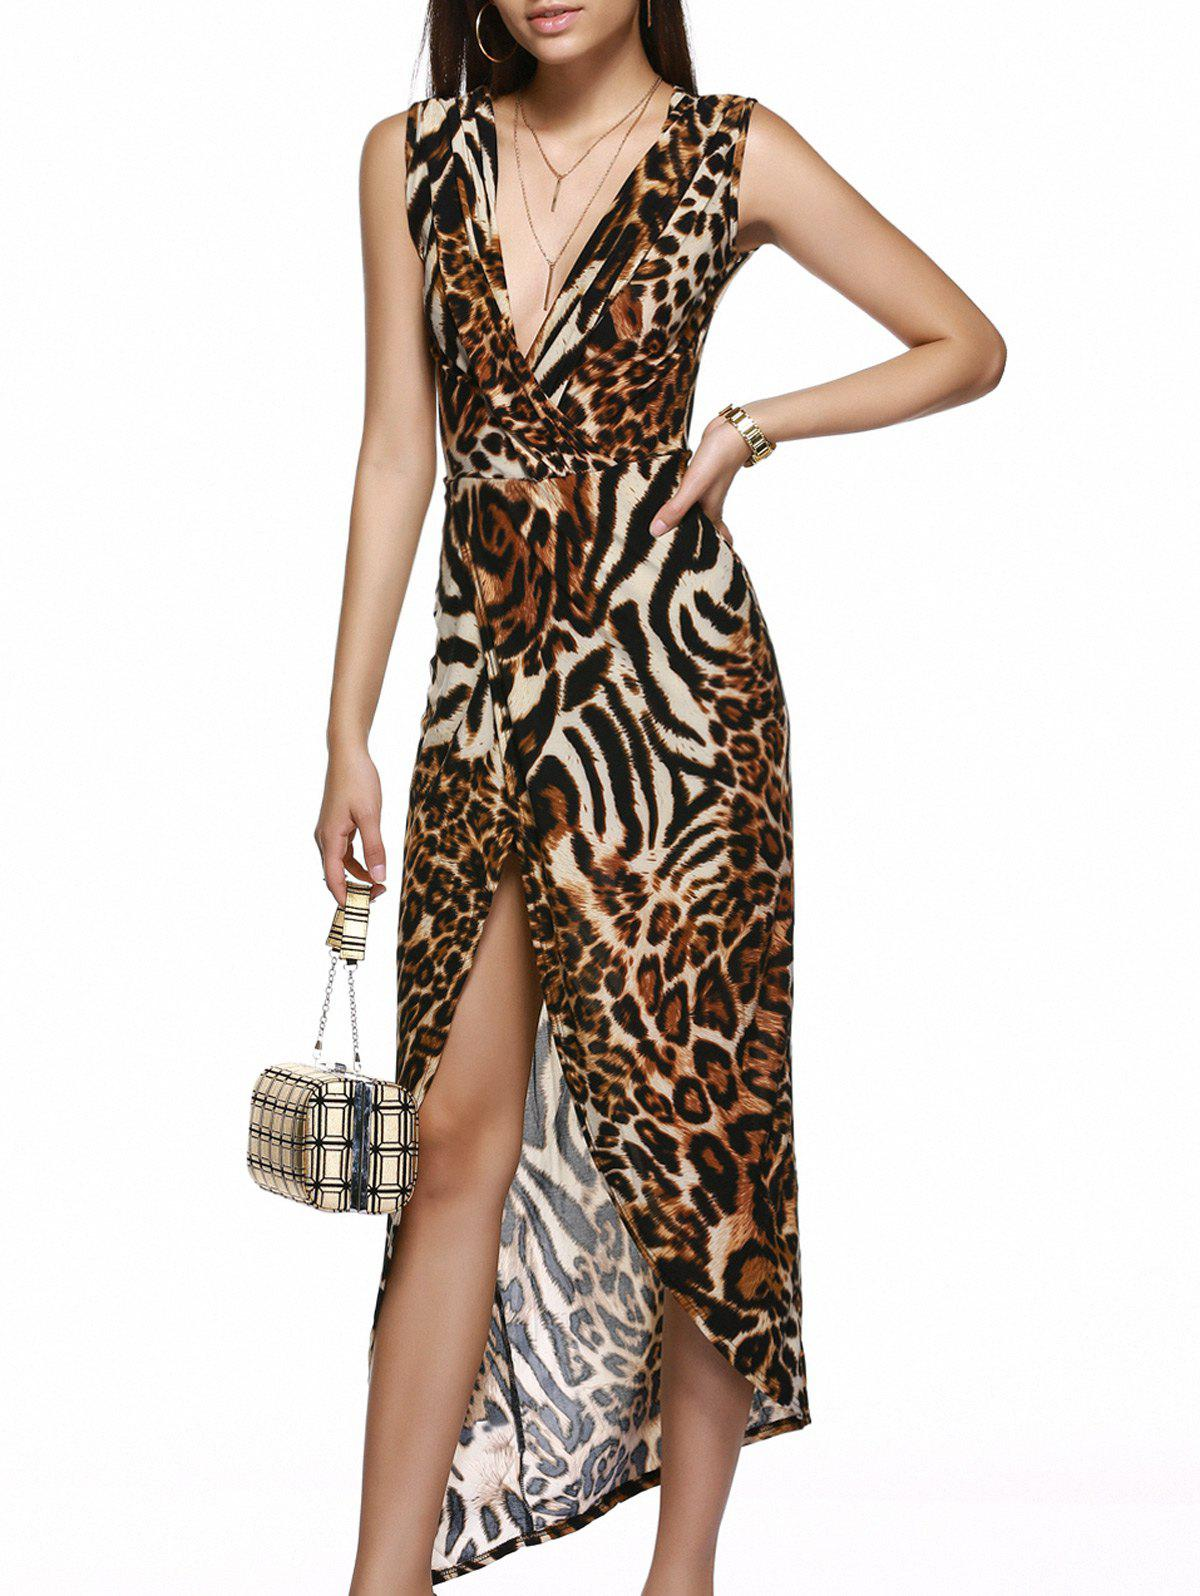 Asymmetric Low Cut High Slit Cheetah Print Dress - LEOPARD XL